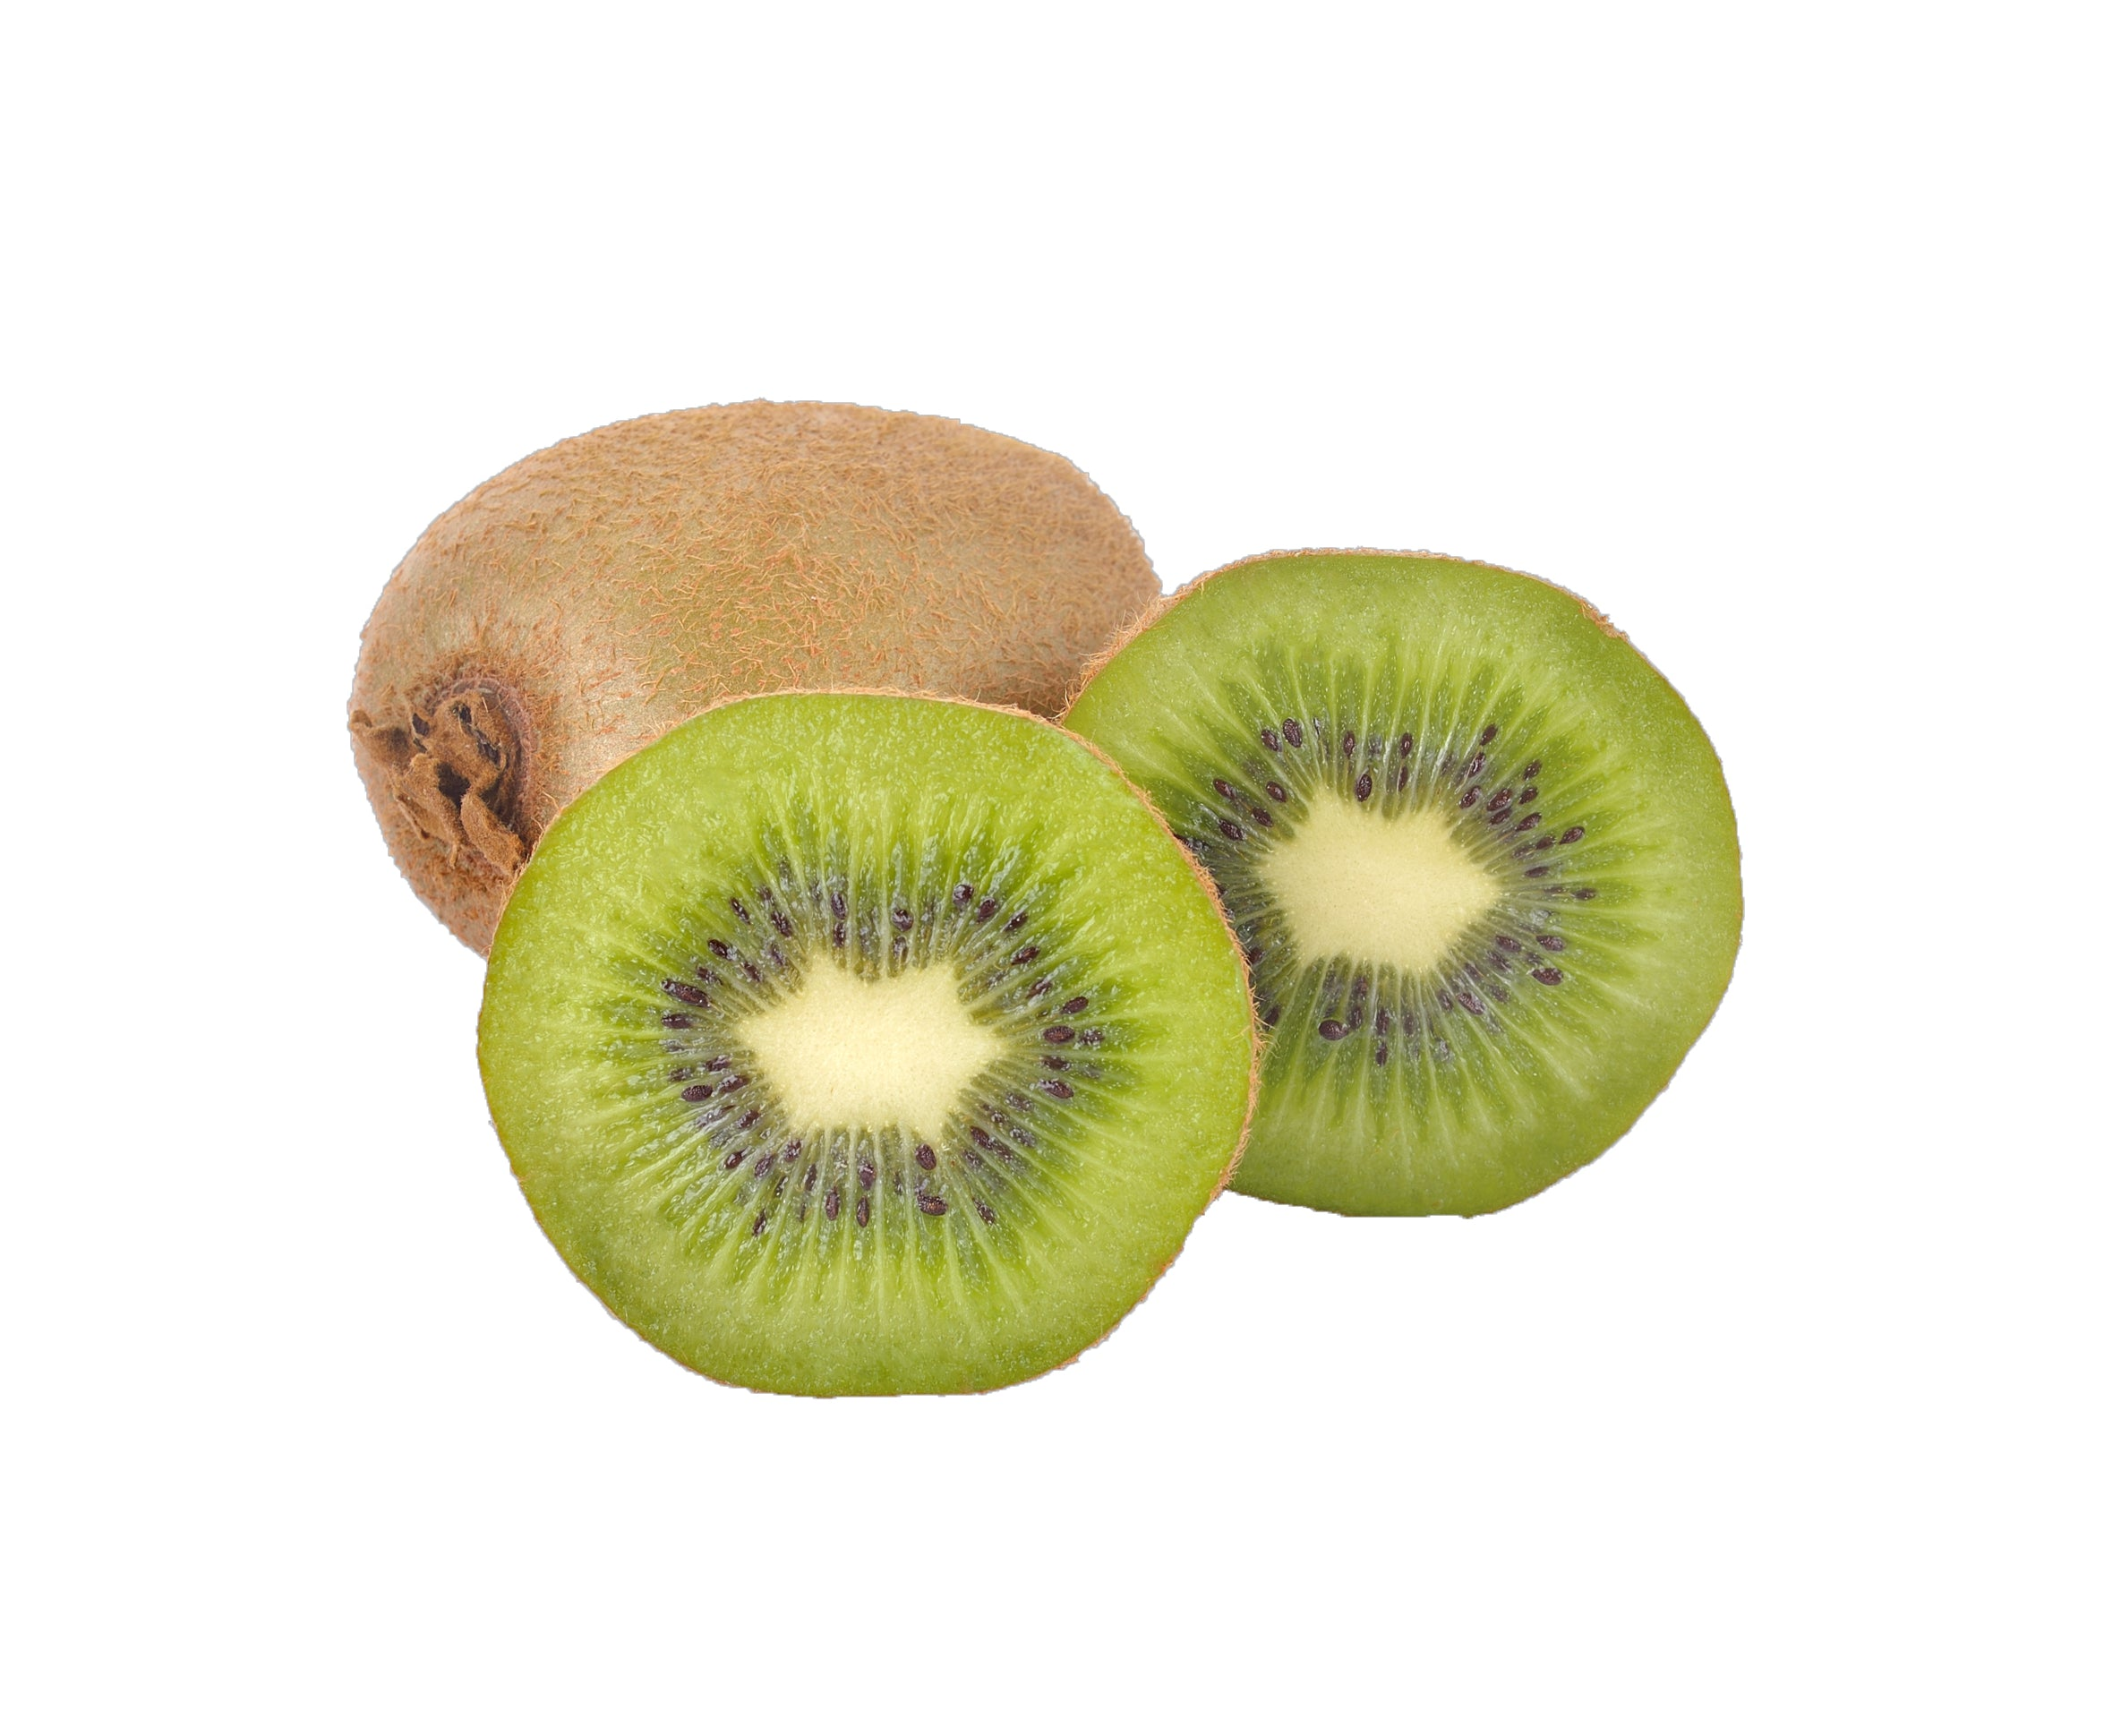 uplift food kiwi fruit prebiotic immune health soluble fiber high fiber cookies gut health